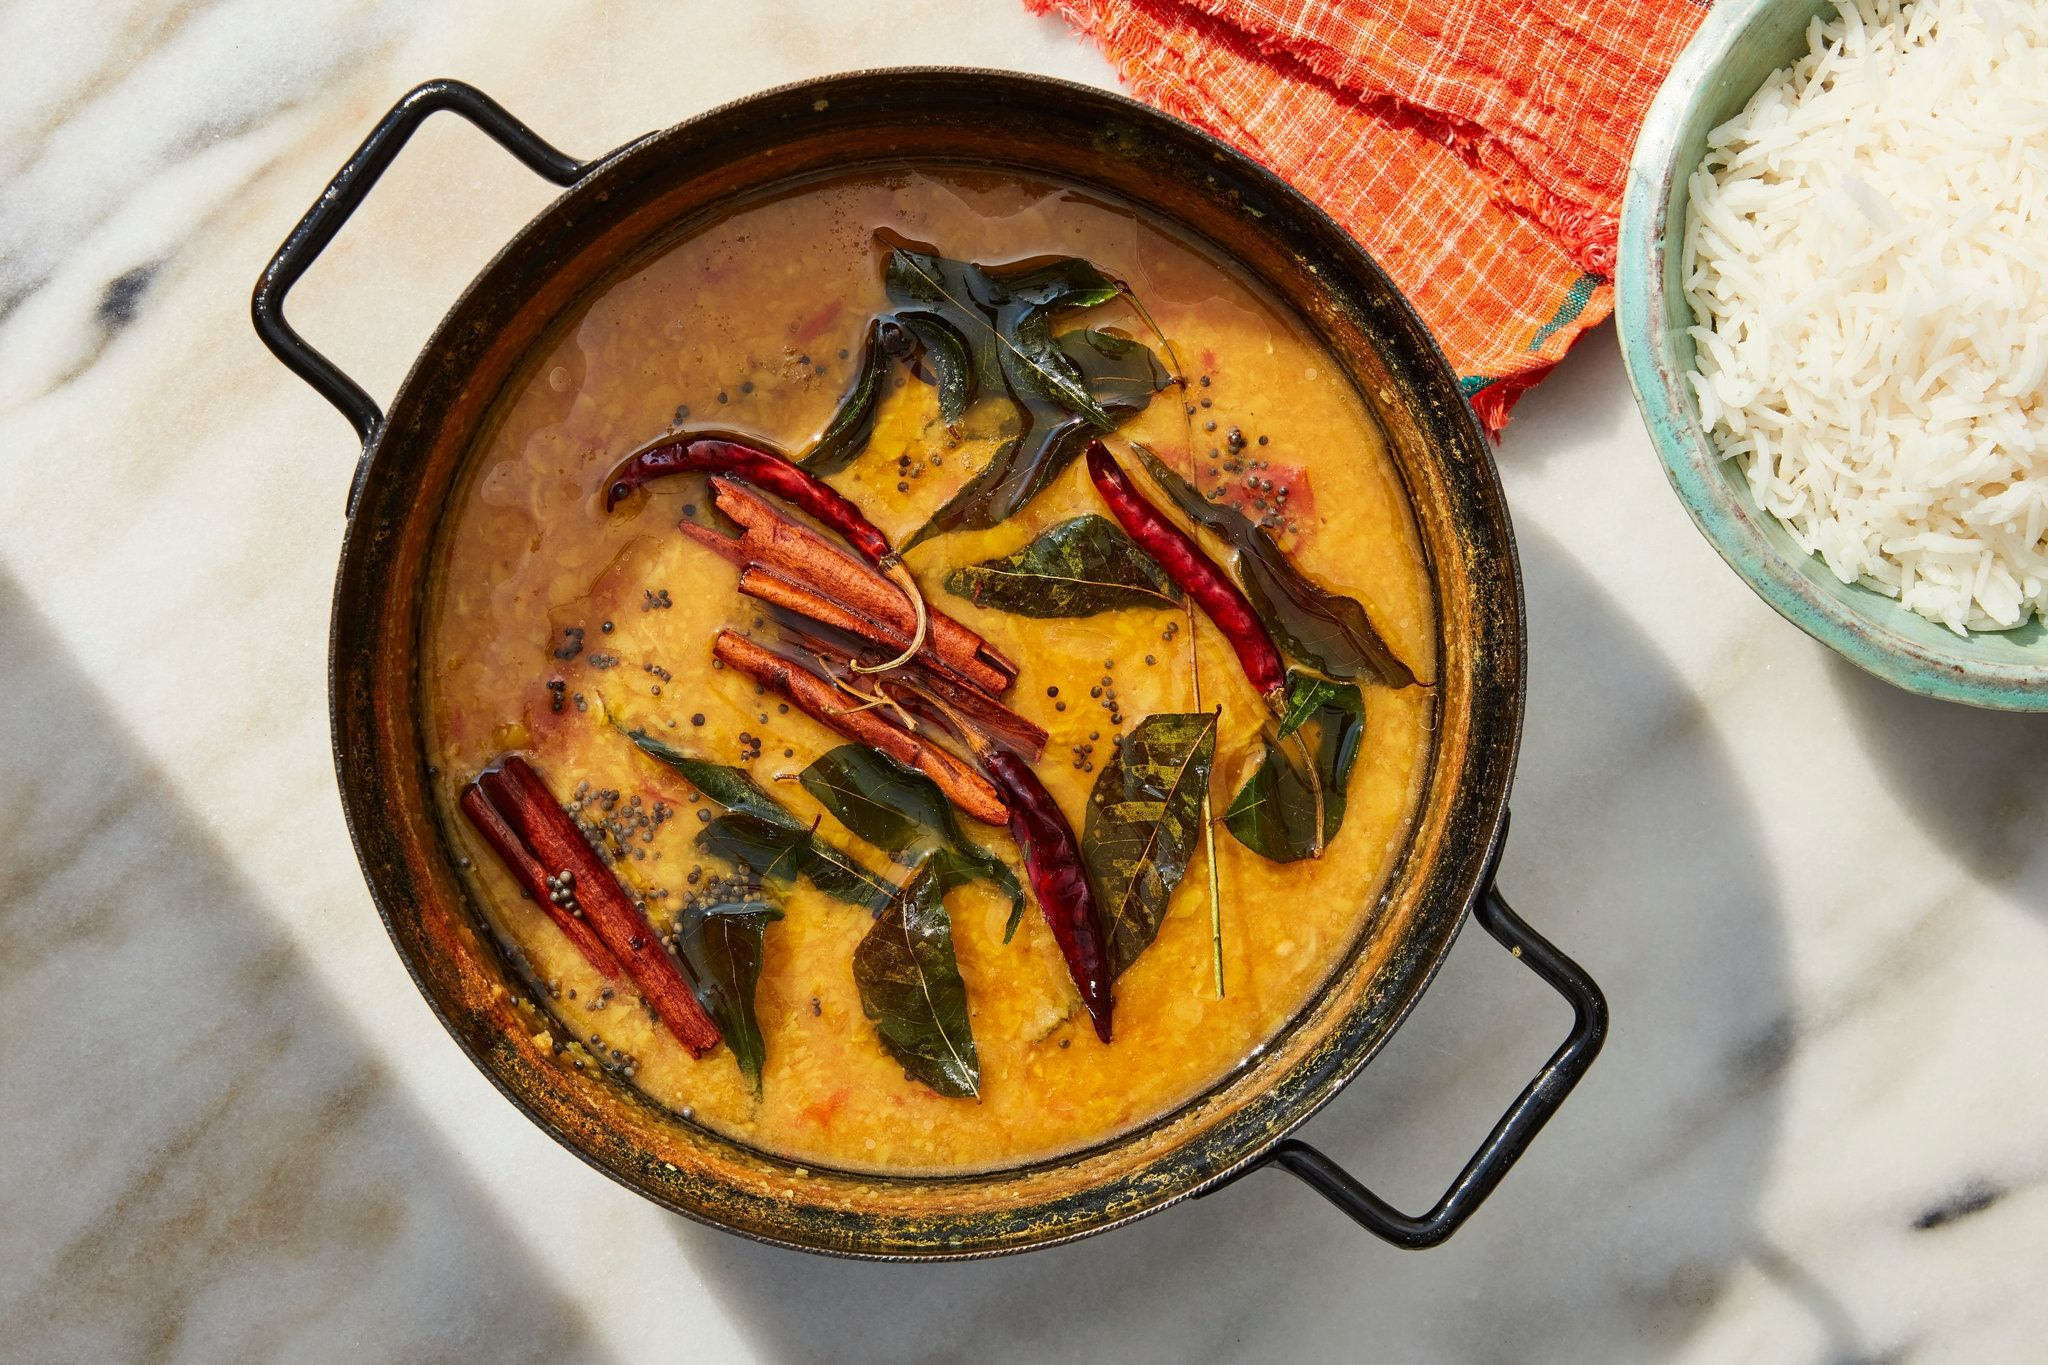 Tejal Rao S 10 Essential Indian Recipes In 2020 Indian Food